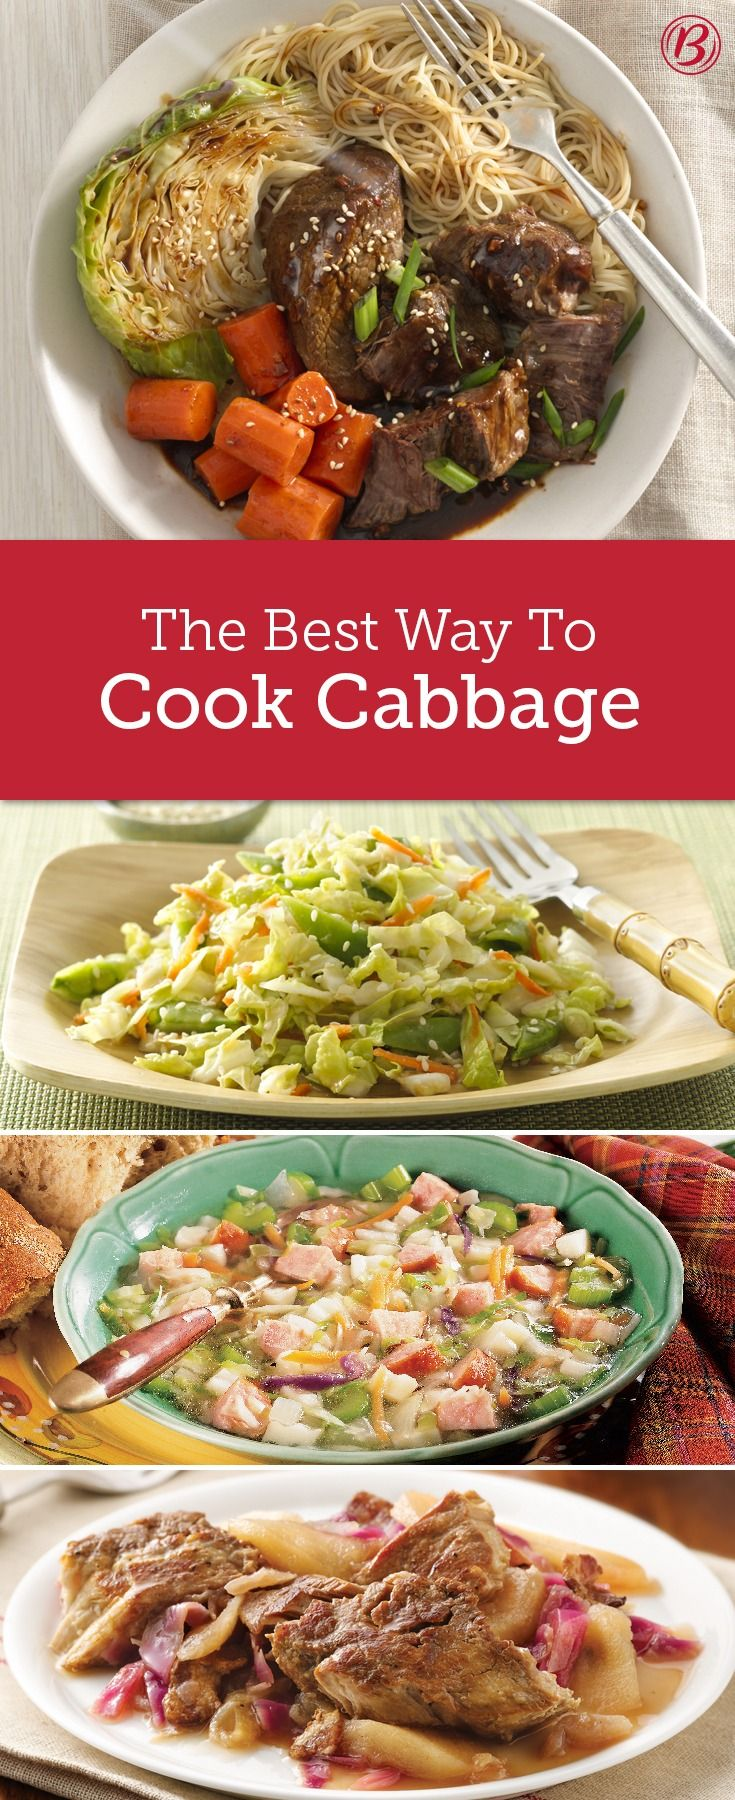 Cabbage has been an indispensable food throughout the world for thousands of years. This mild-tasting vegetable is easy to grow, versatile and inexpensive. It comes in many different varieties and with loads of health benefits. Learn how to cook cabbage, shop for it and store it.